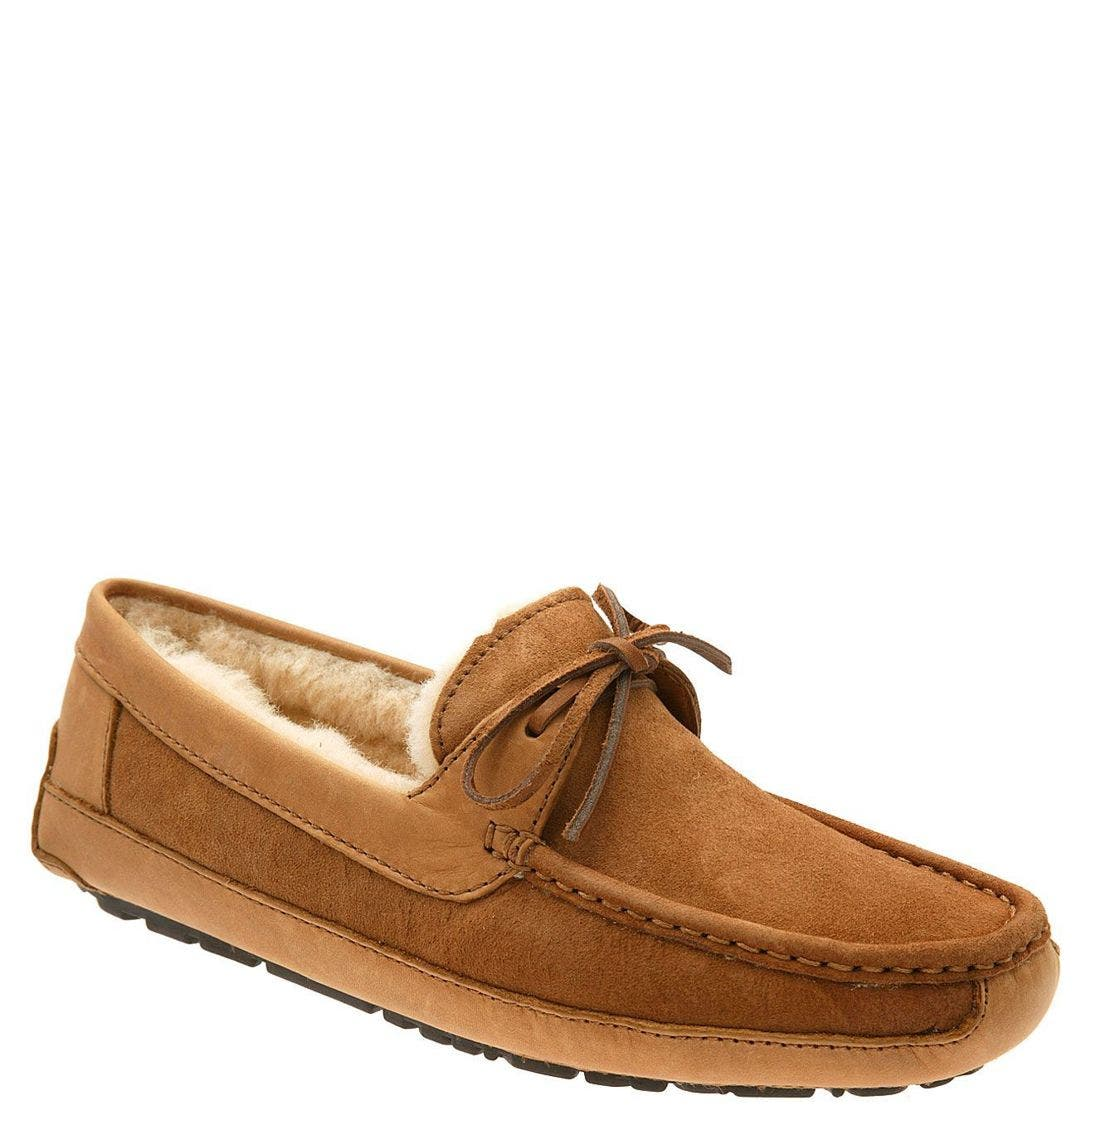 Alternate Image 1 Selected - UGG® 'Byron' Slipper (Men)